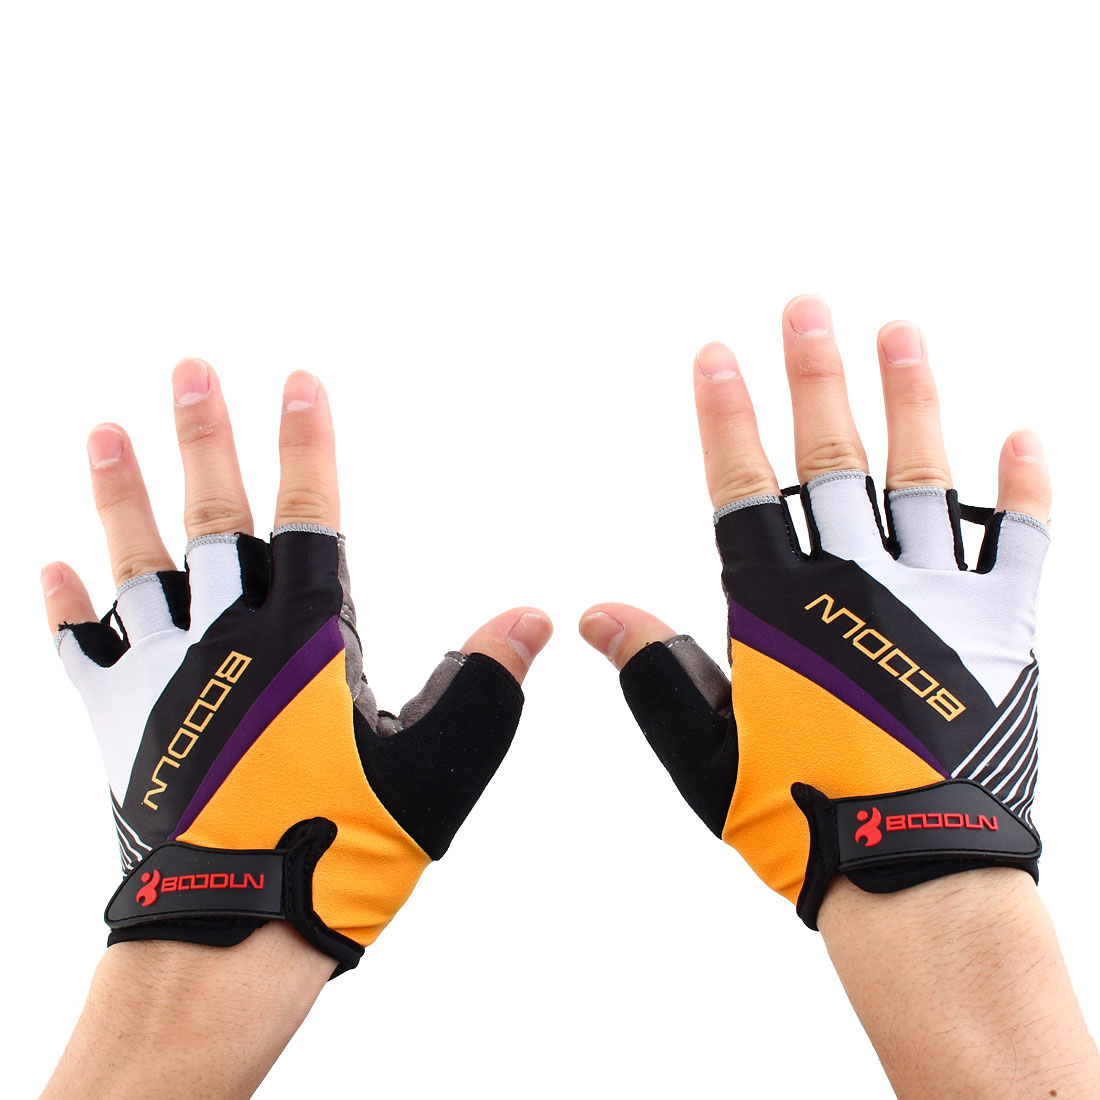 BOODUN Authorized Unisex Exercise Sports Cycling Fitness Half Finger Palm Support Gloves Yellow Size L Pair